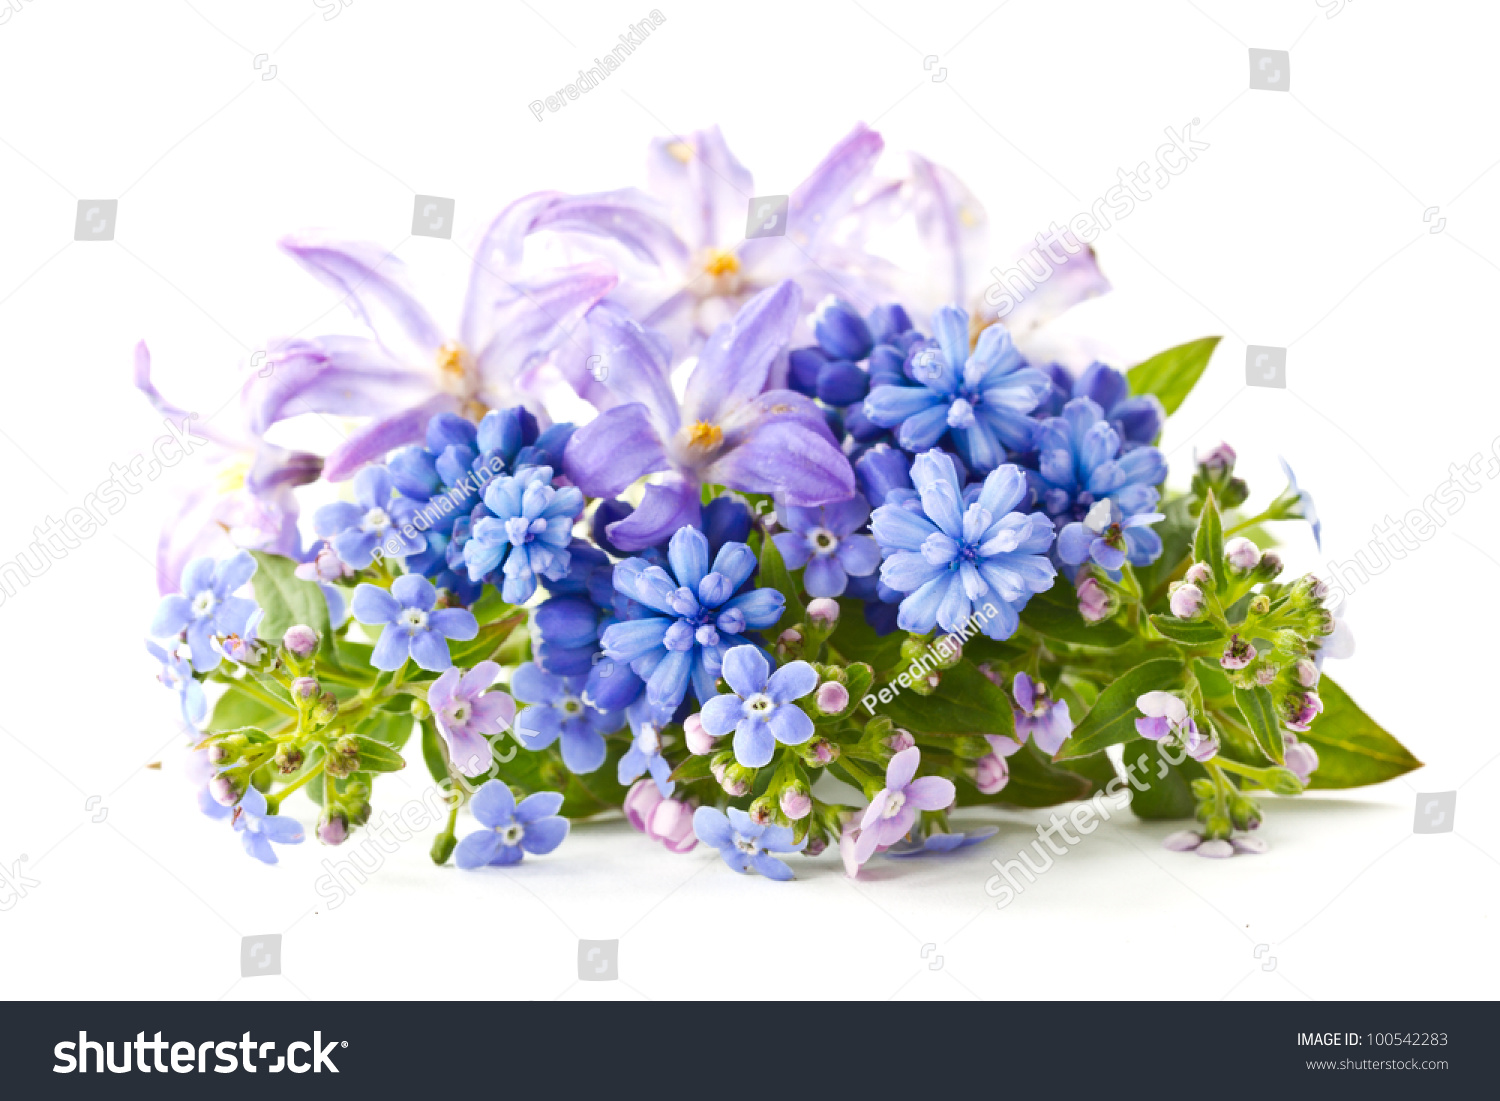 Beautiful Bouquet Spring Flowers On White Stock Photo & Image ...